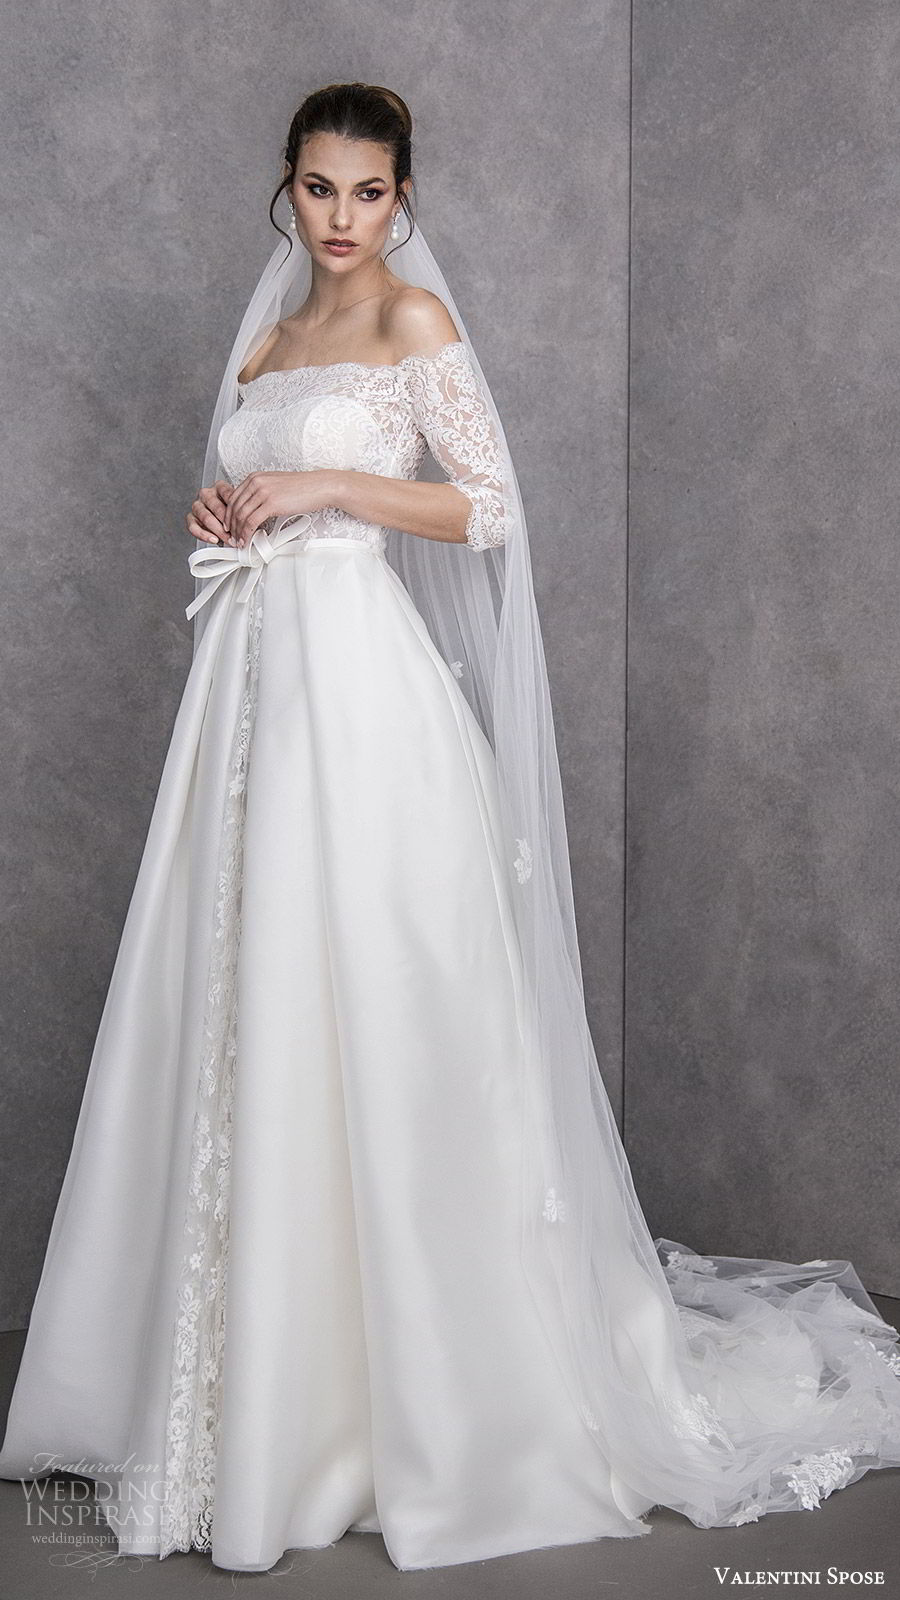 valentini spose spring 2020 bridal off shoulder illusion 3 quarter sleees lace bodice a line ball gown wedding dress (22) elegant princess romantic chapel train mv